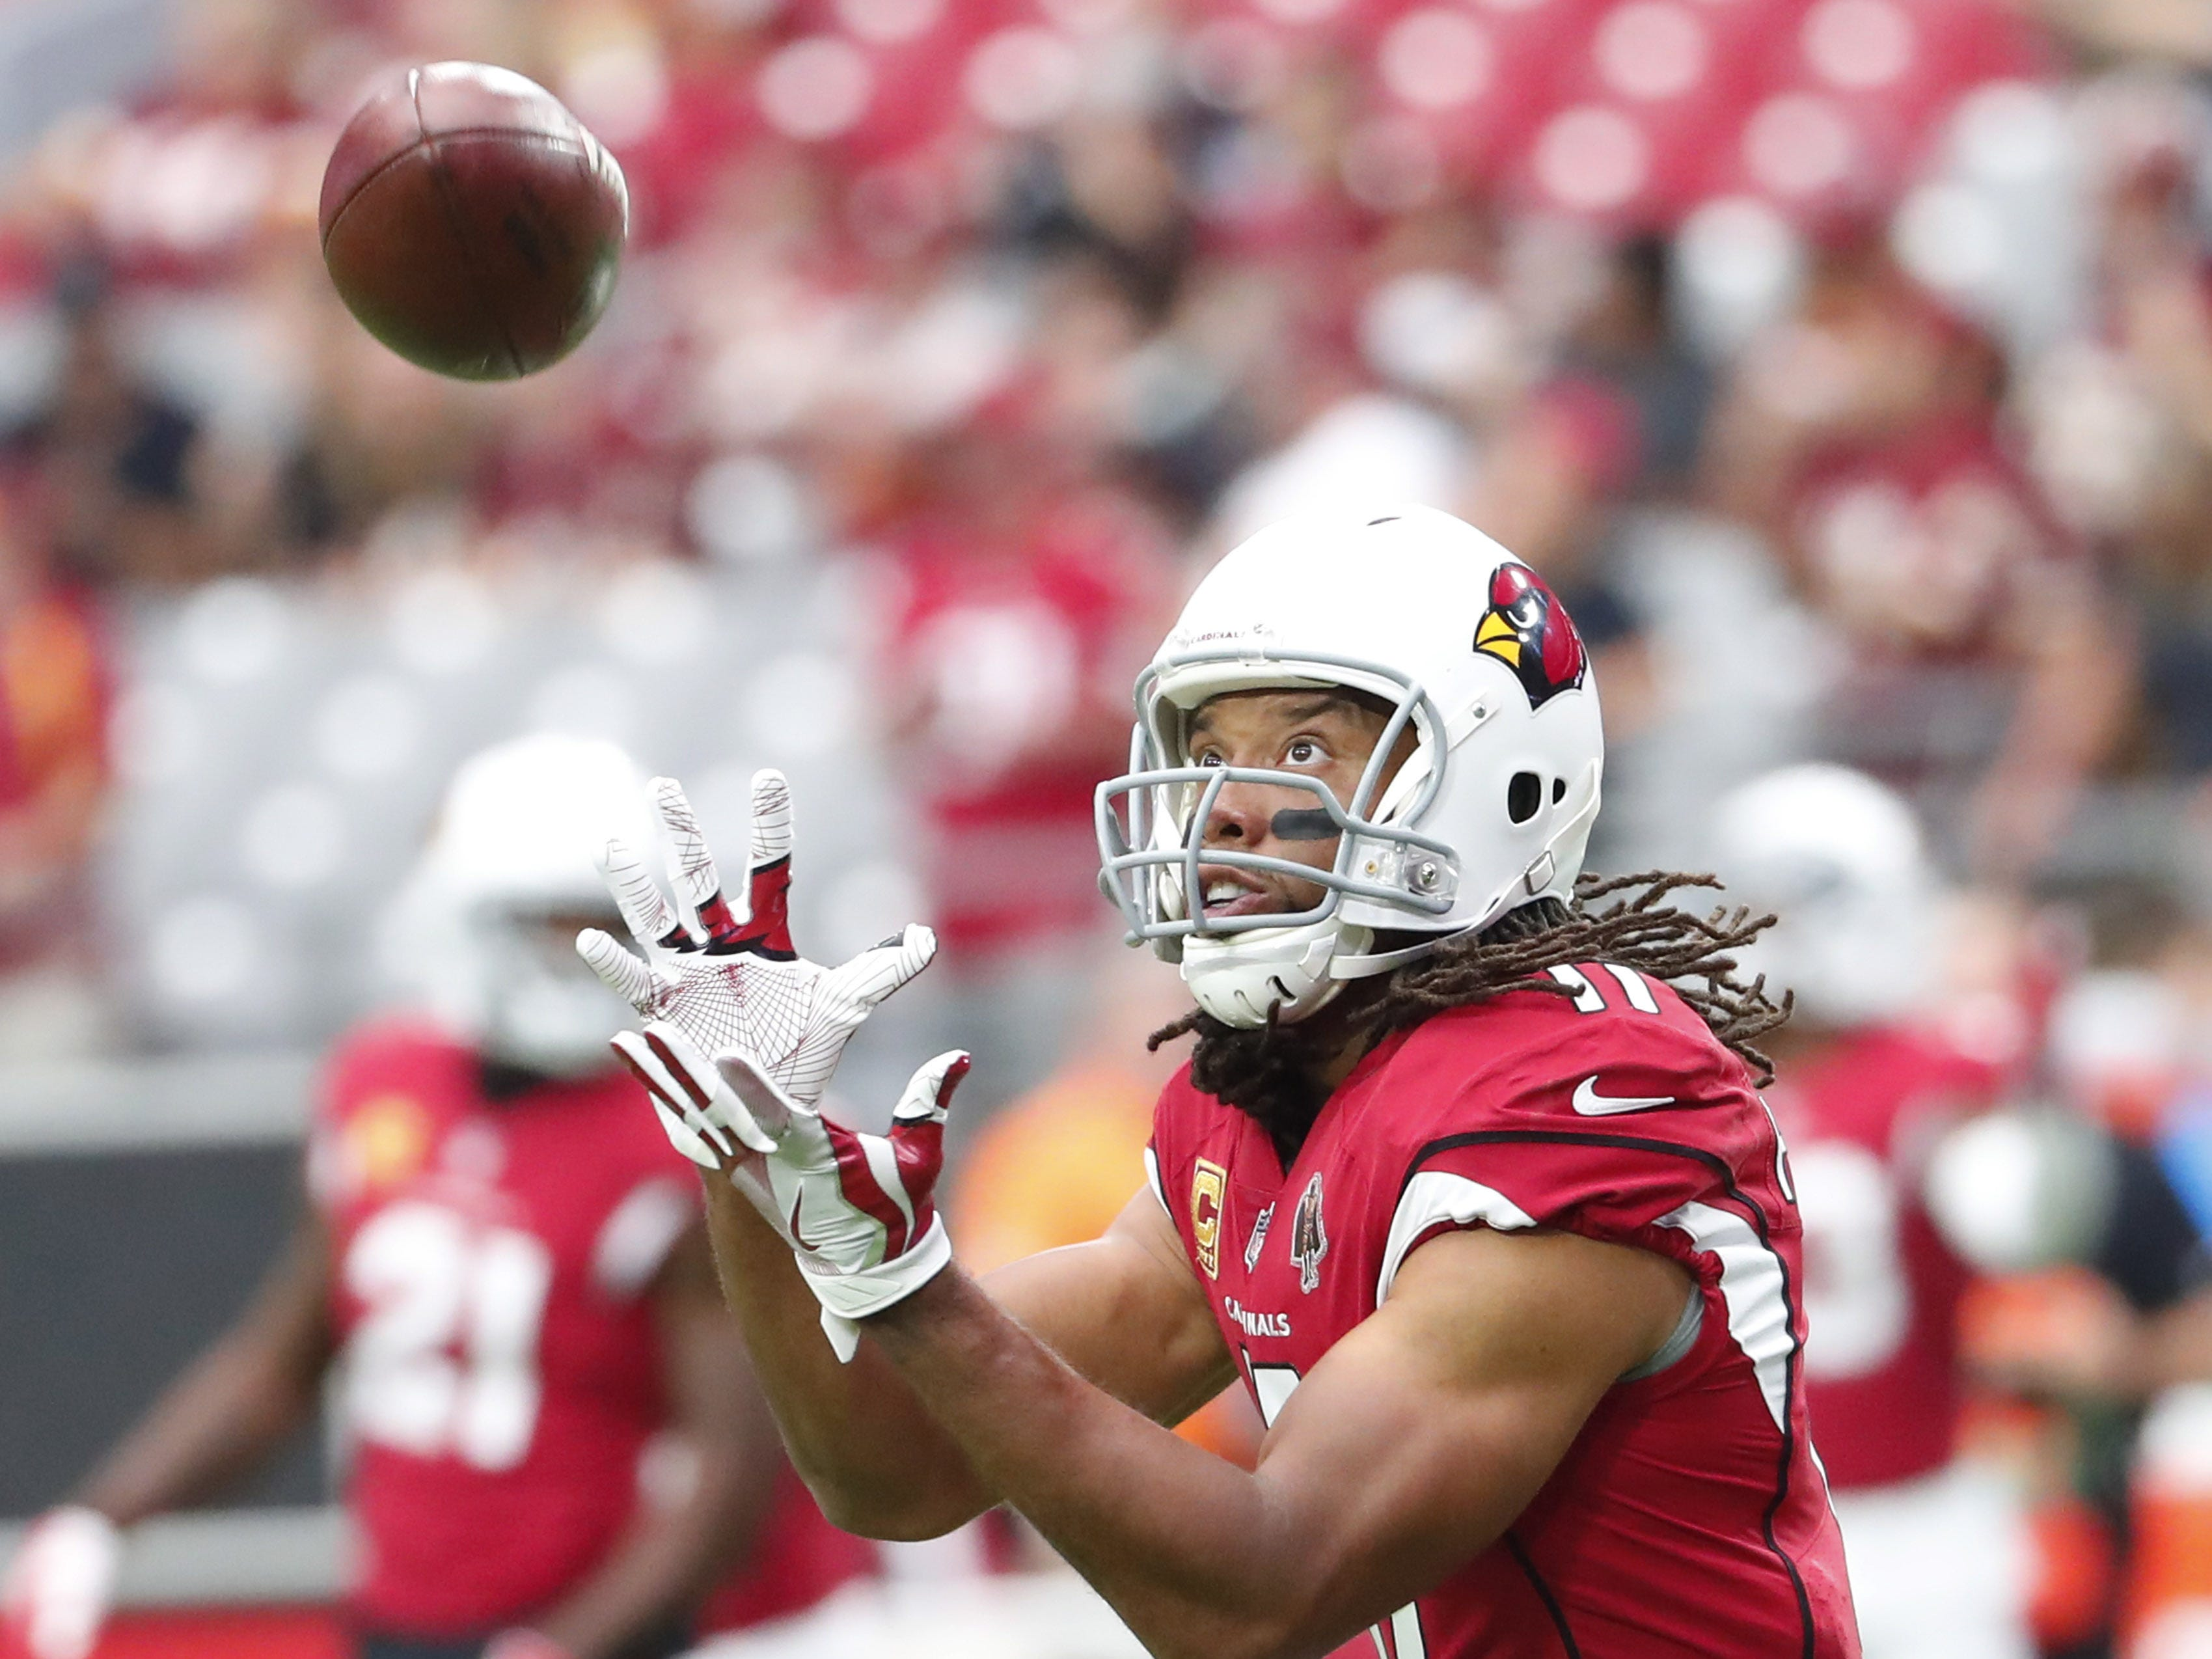 Arizona Cardinals wide receiver Larry Fitzgerald (11) warms up before playing against the Washington Redskins at State Farm Stadium in Glendale, Ariz. September 9. 2018.